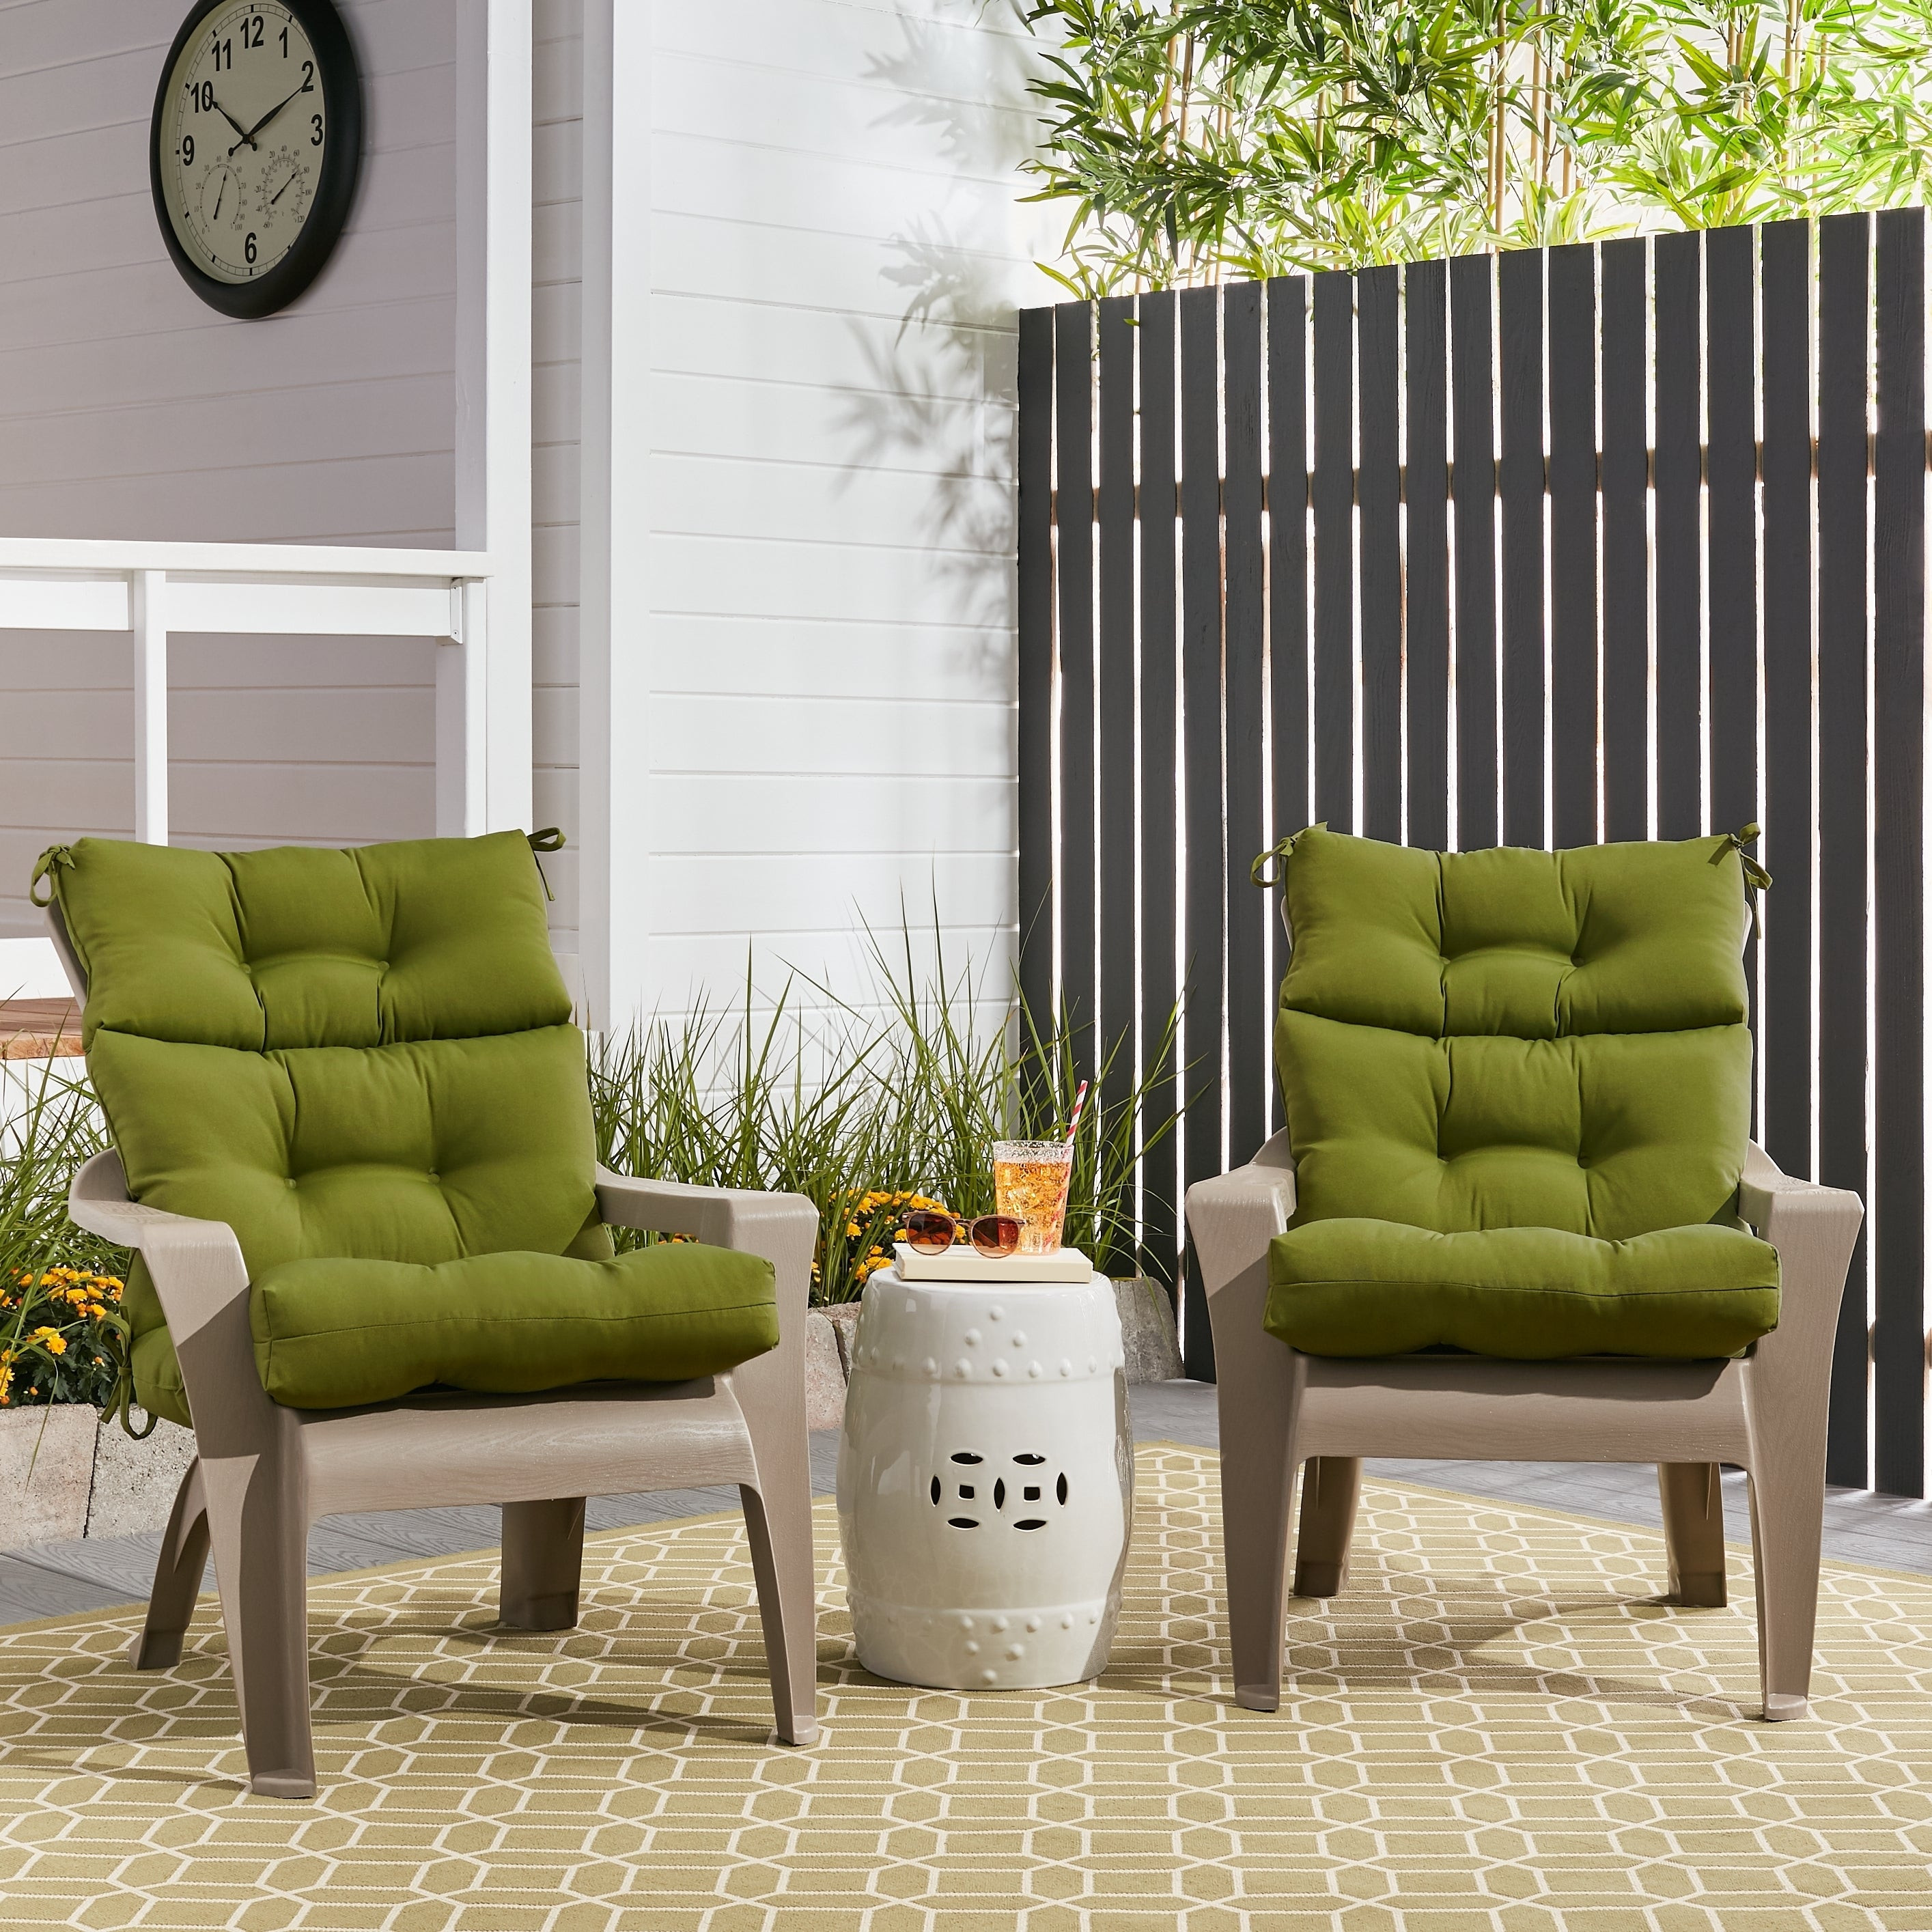 Best ideas about Patio Furniture Cushion Covers . Save or Pin Outdoor High Back Chair Cushions Set of 2 Overstuffed Now.